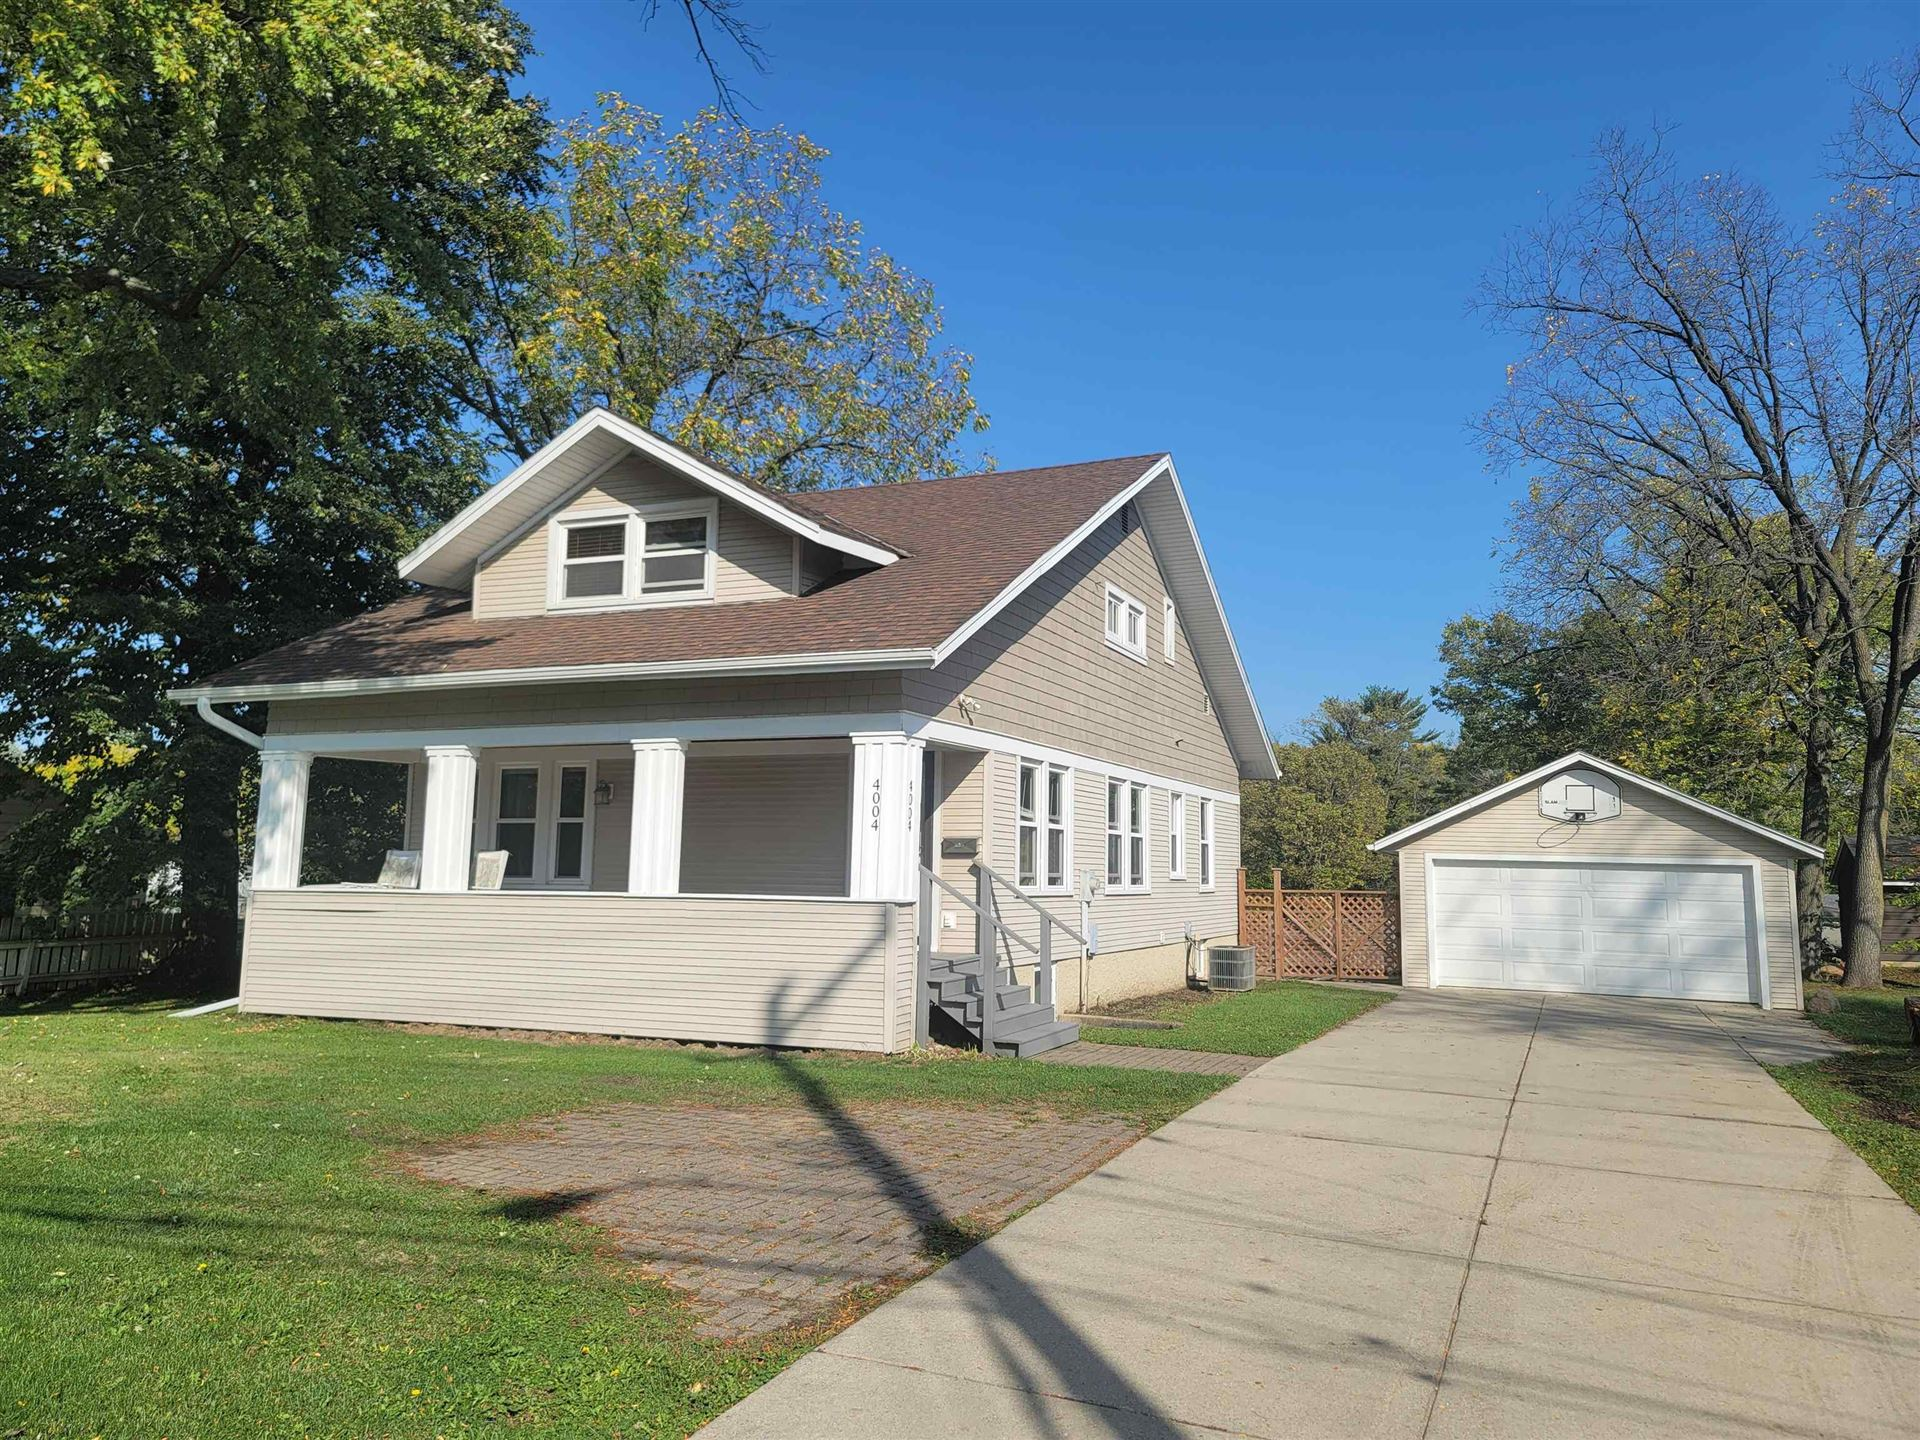 4004 Mineral Point Rd, Madison, WI 53705-5126 - #: 1921884